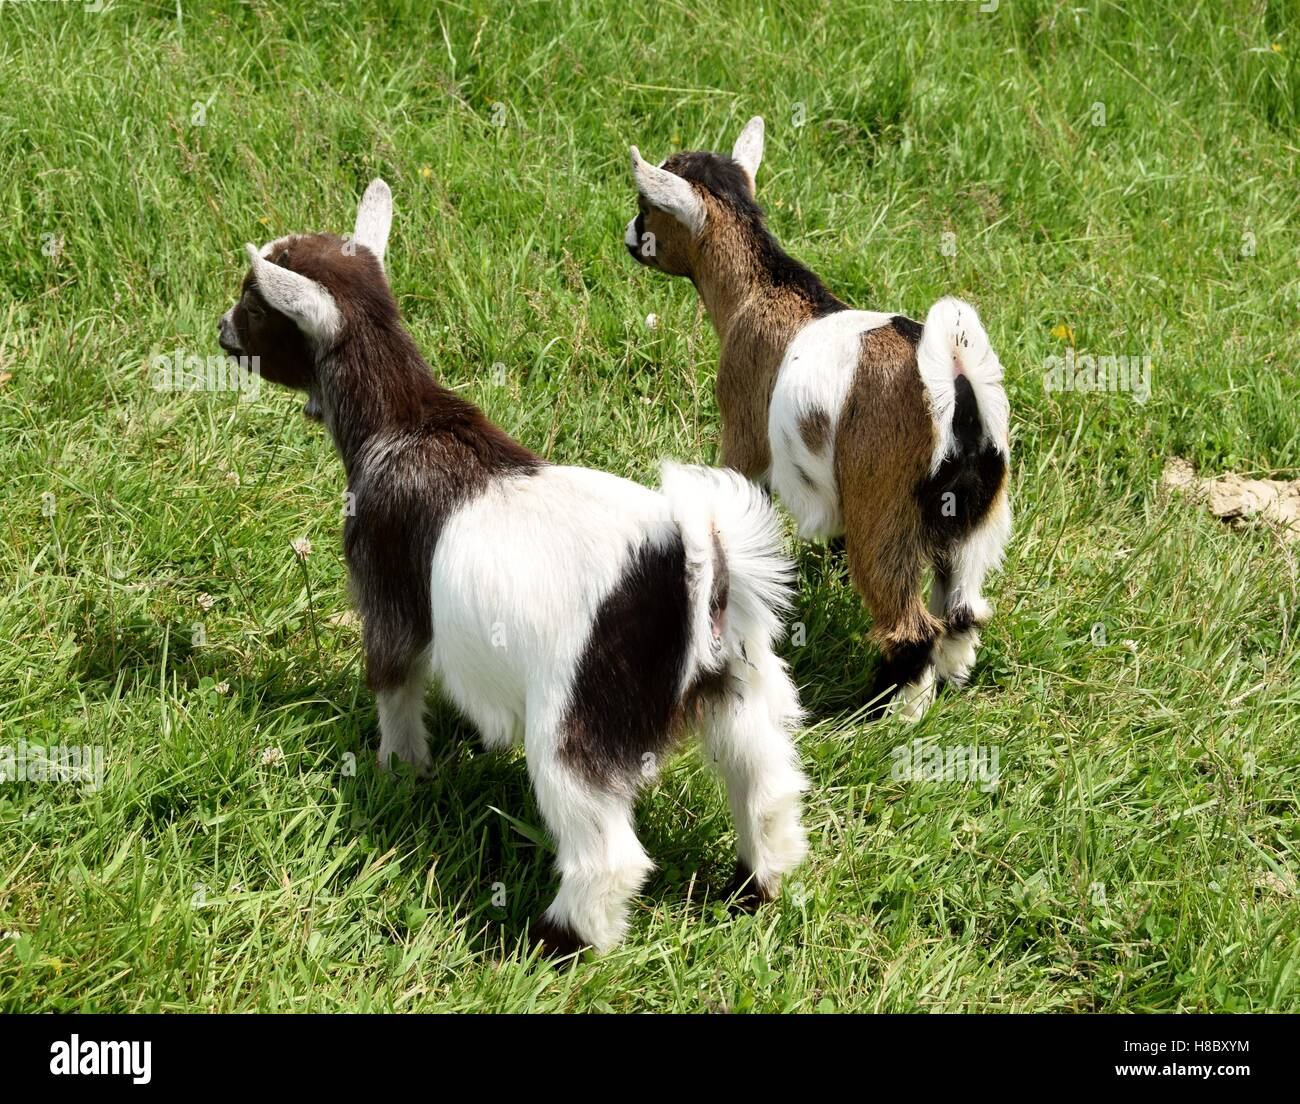 Goat kids looking for their mother. - Stock Image